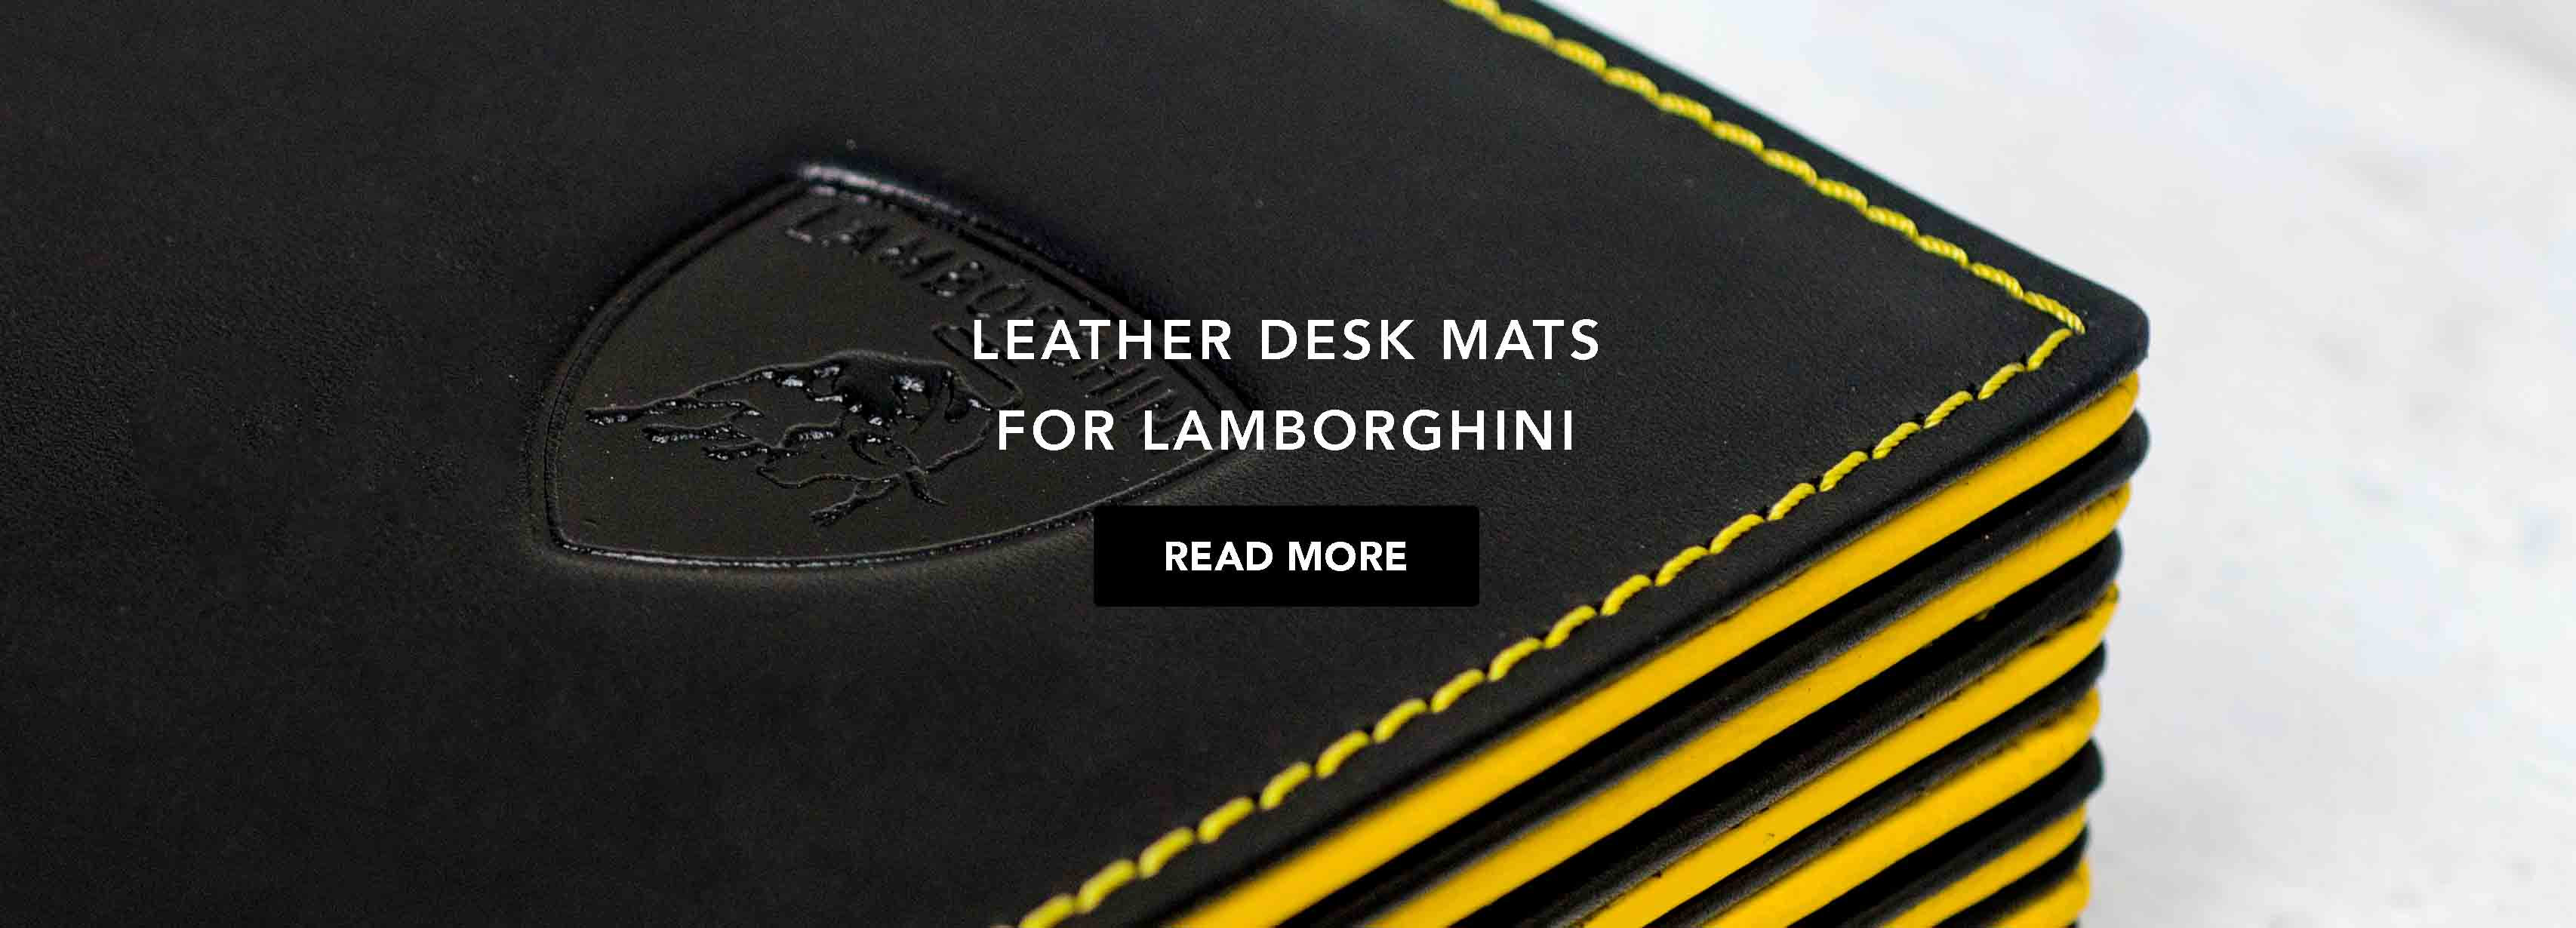 leather-laptop-desk-mats-for-lamborghini